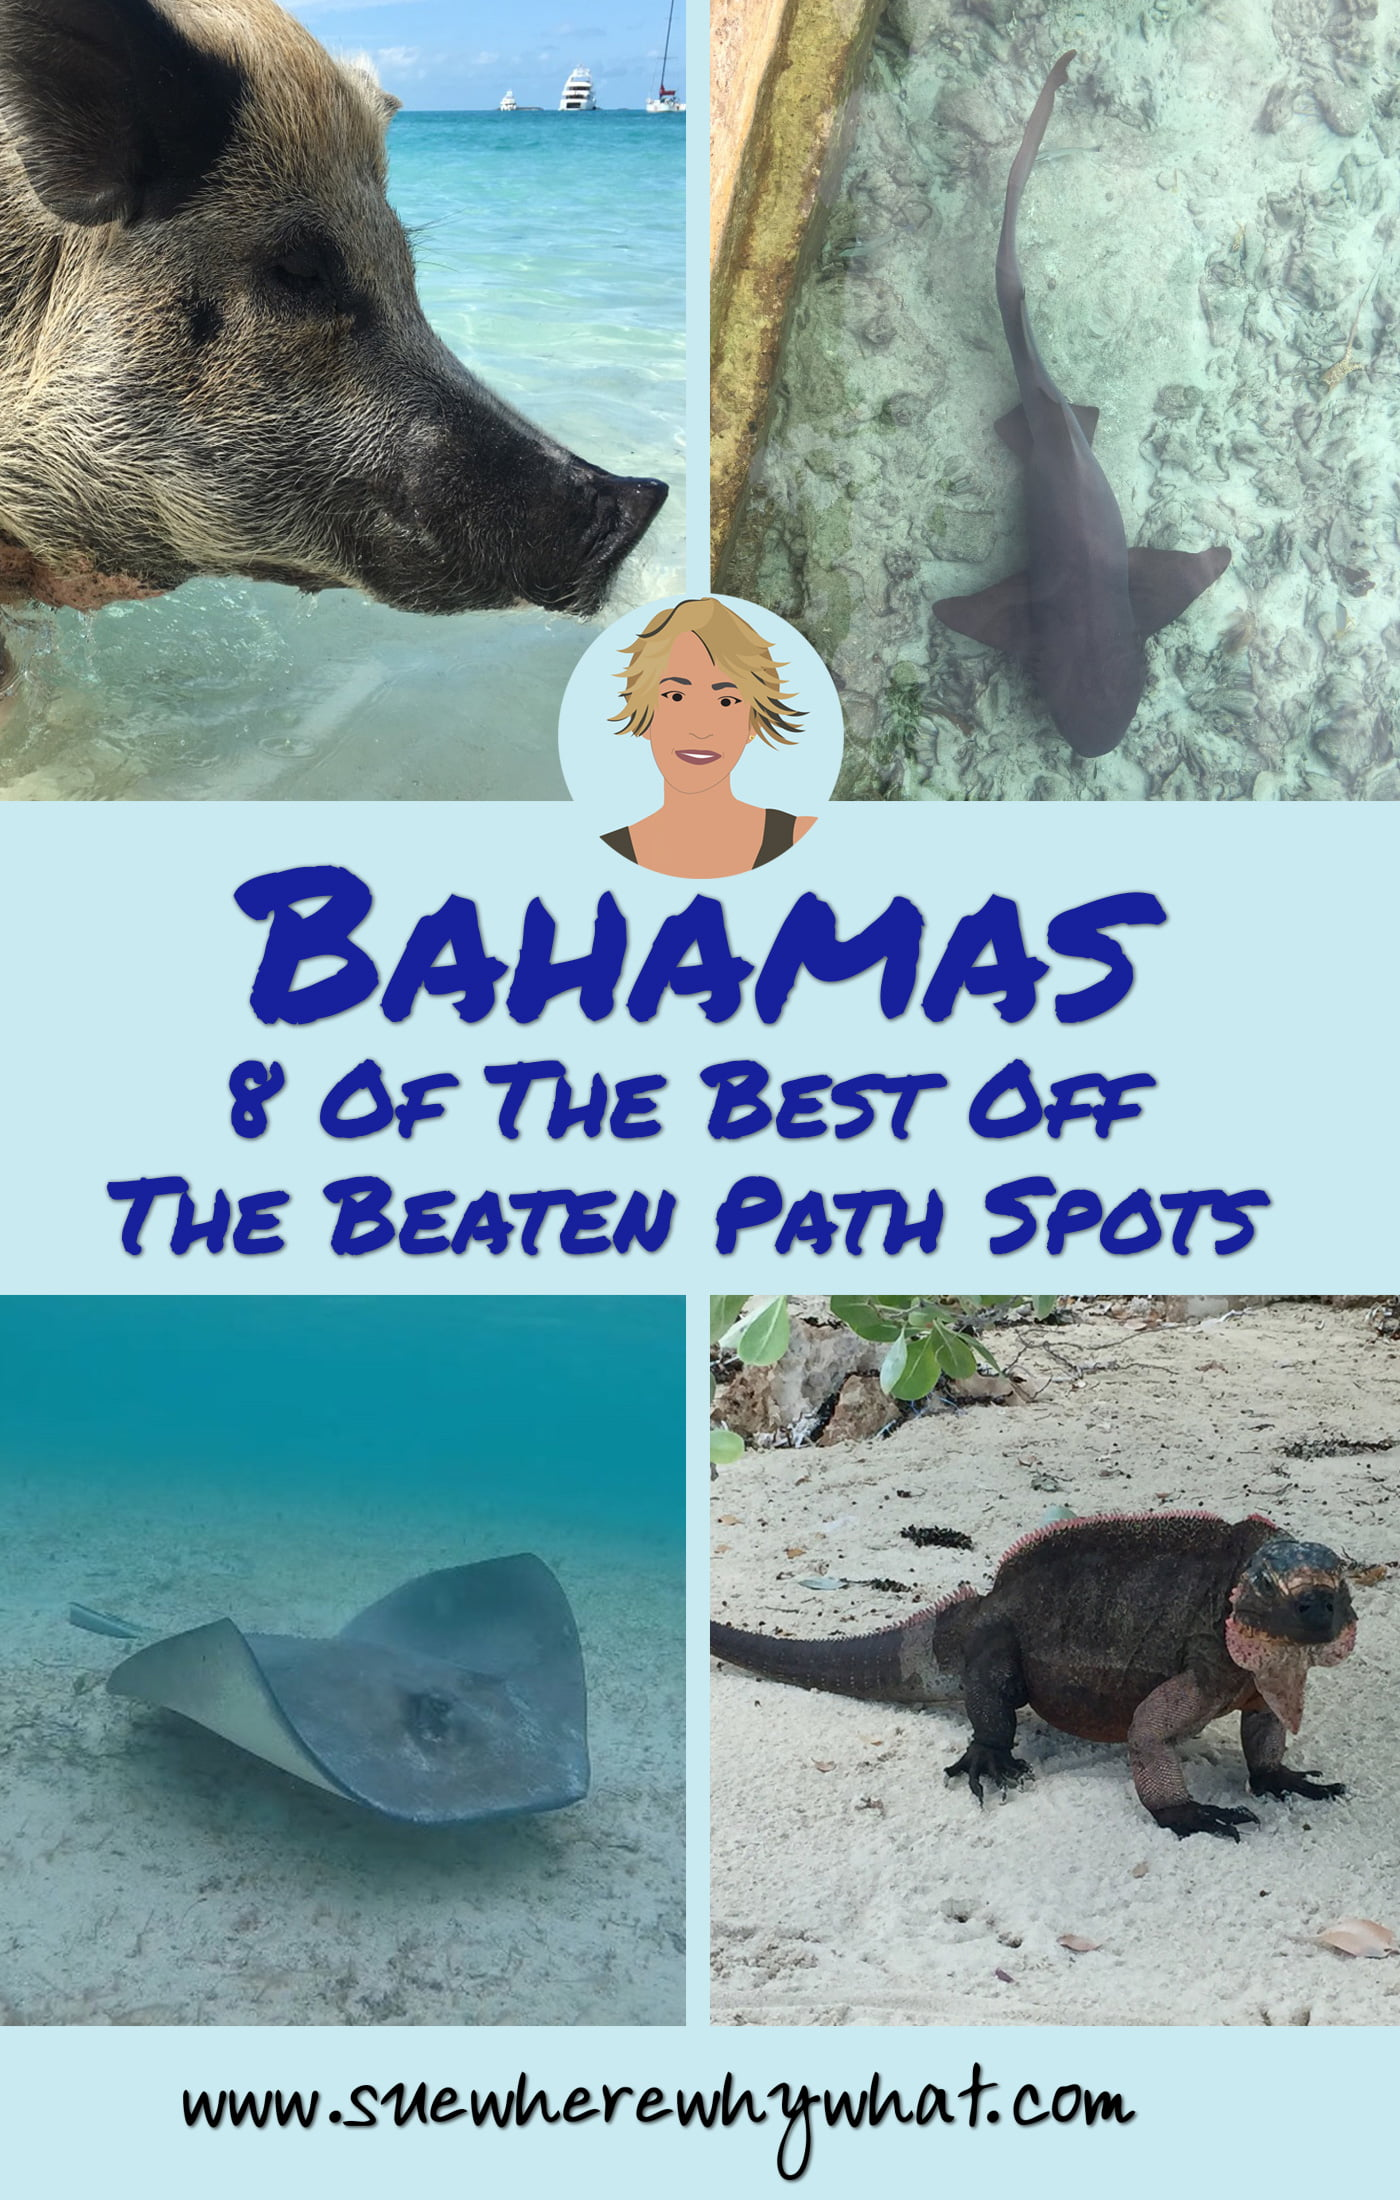 8 Of The Best Off The Beaten Path Spots In The Bahamas